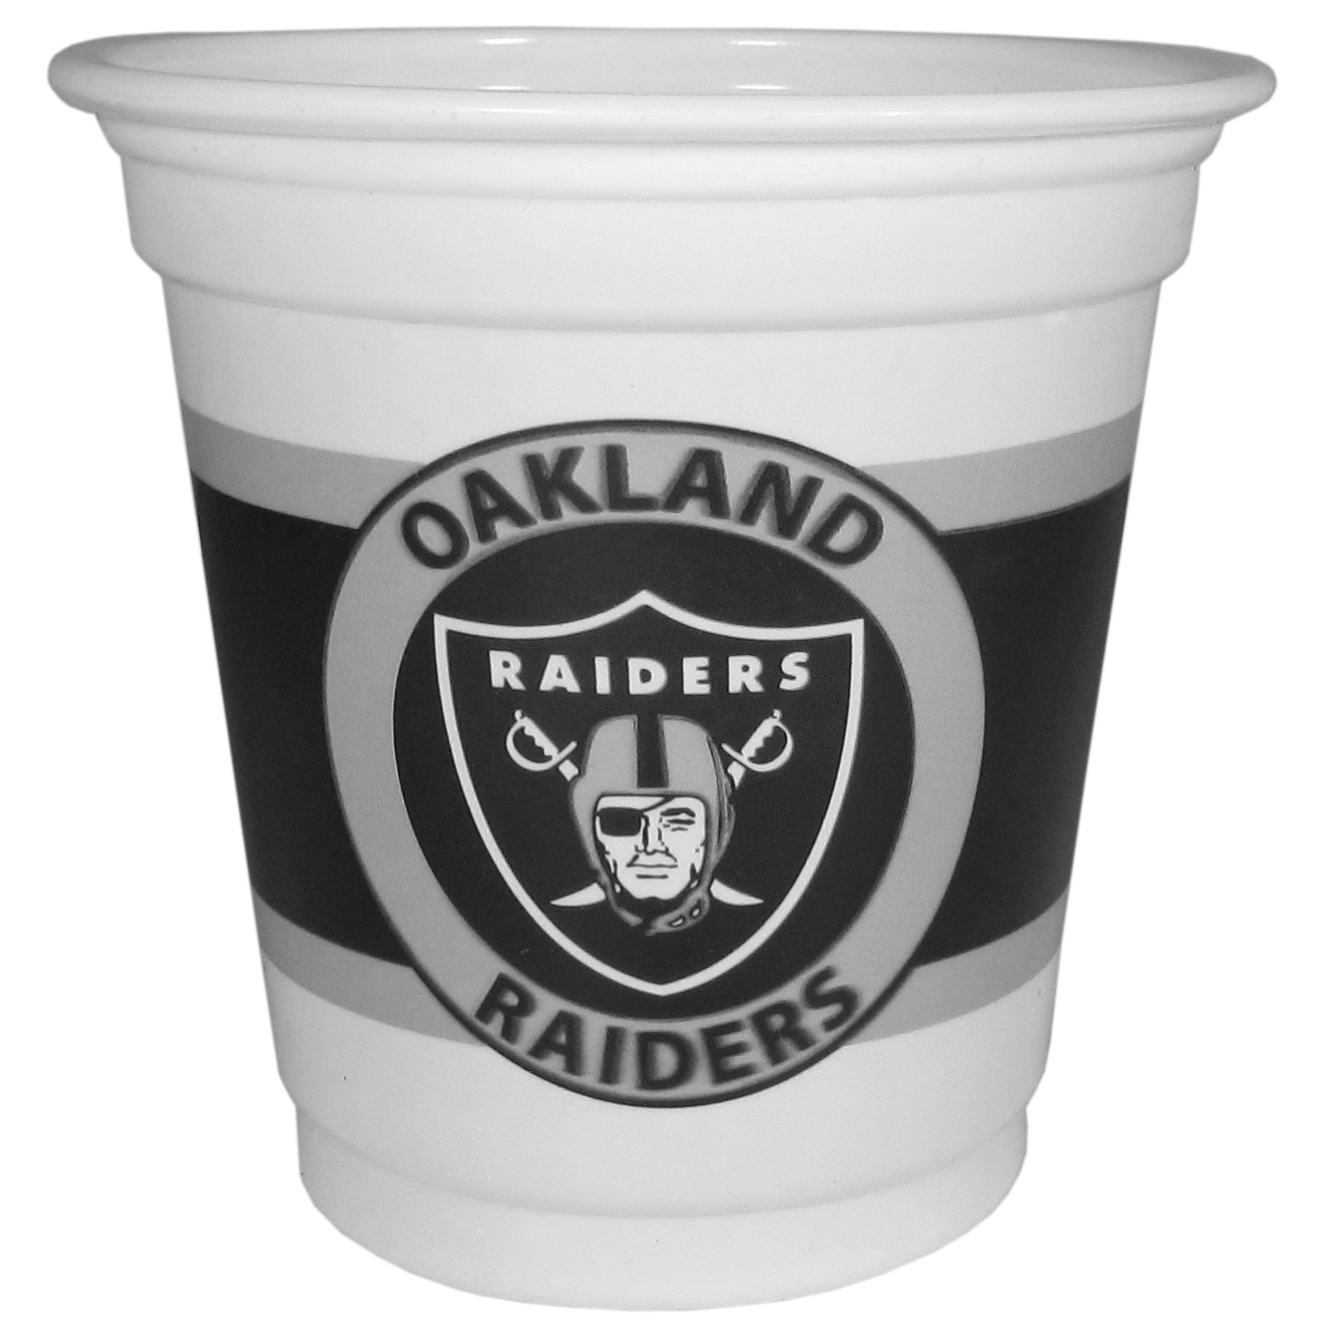 Oakland Raiders 18 Game Day Mini Cups - No better way to show your off your team pride on game day than these Oakland Raiders game day mini cups. The 3 ounce disposable glasses are the perfect addition to your game day party or tailgating BBQ. The cups come in a sleeve of 18 to make sure everyone is sporting true team spirit!